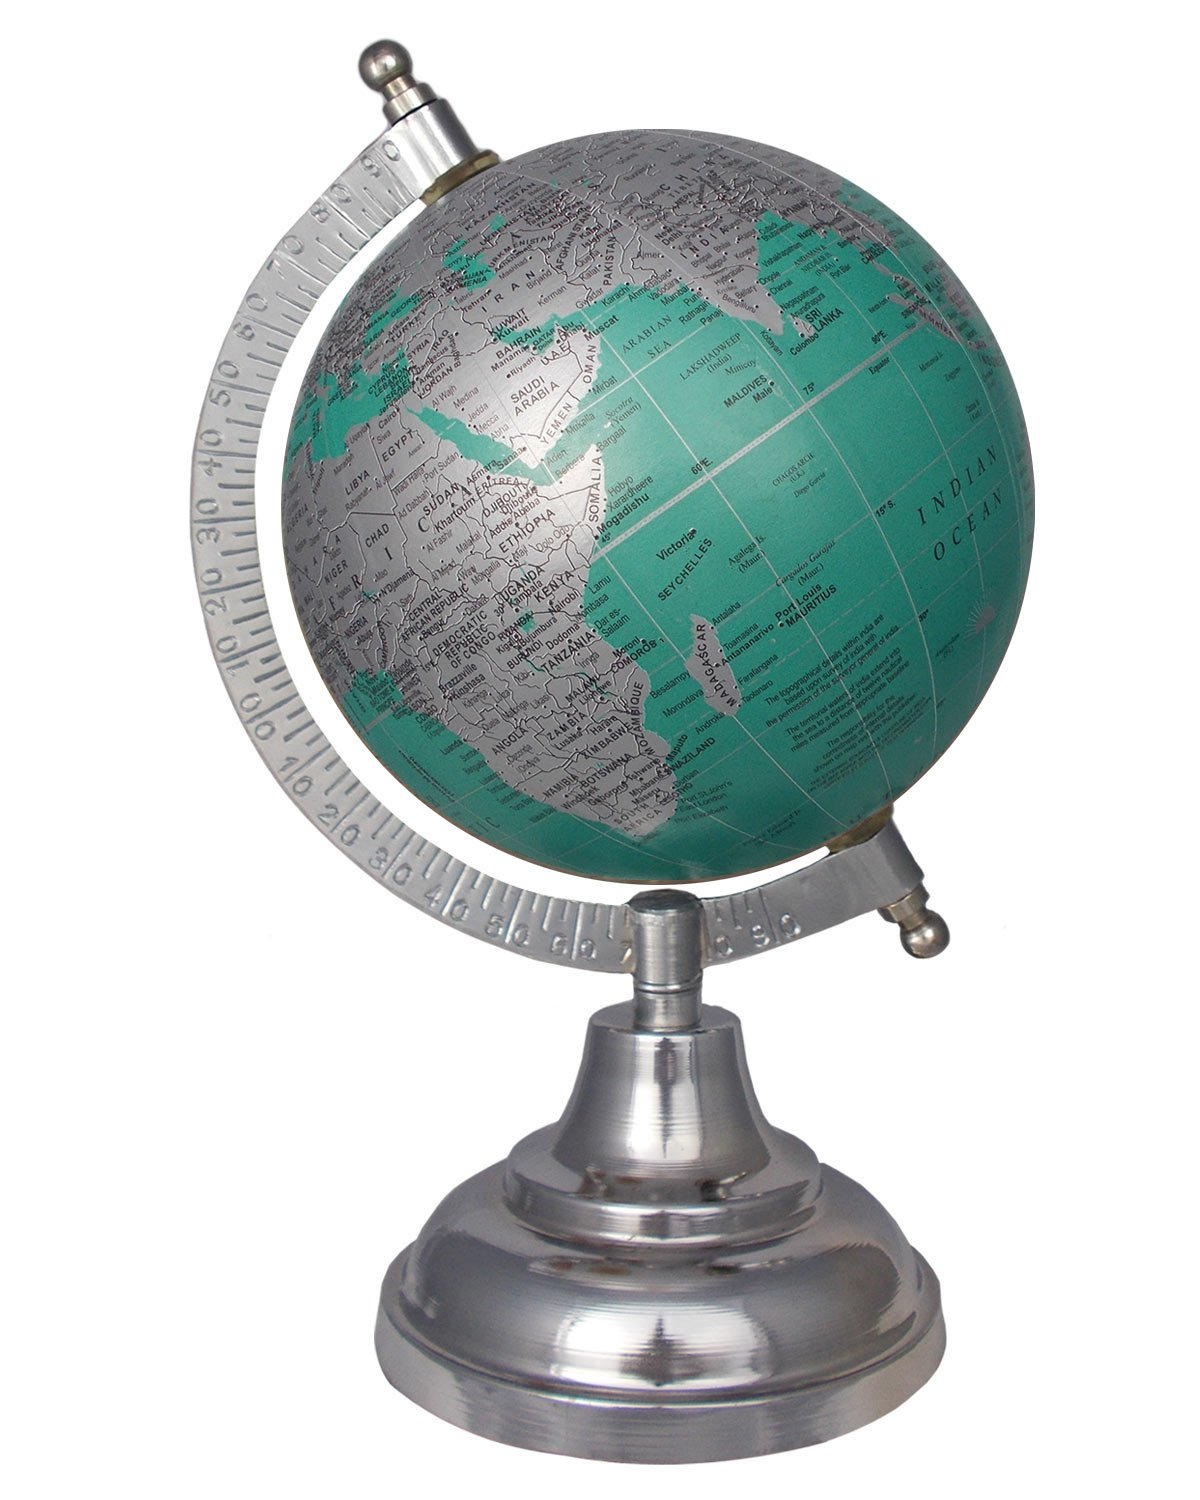 MasterpieceIndia Geographical Vintage Educational 5 Inches Diameter World Earth Desktop Gift Decor Office Home Decorative Tabletop Globe